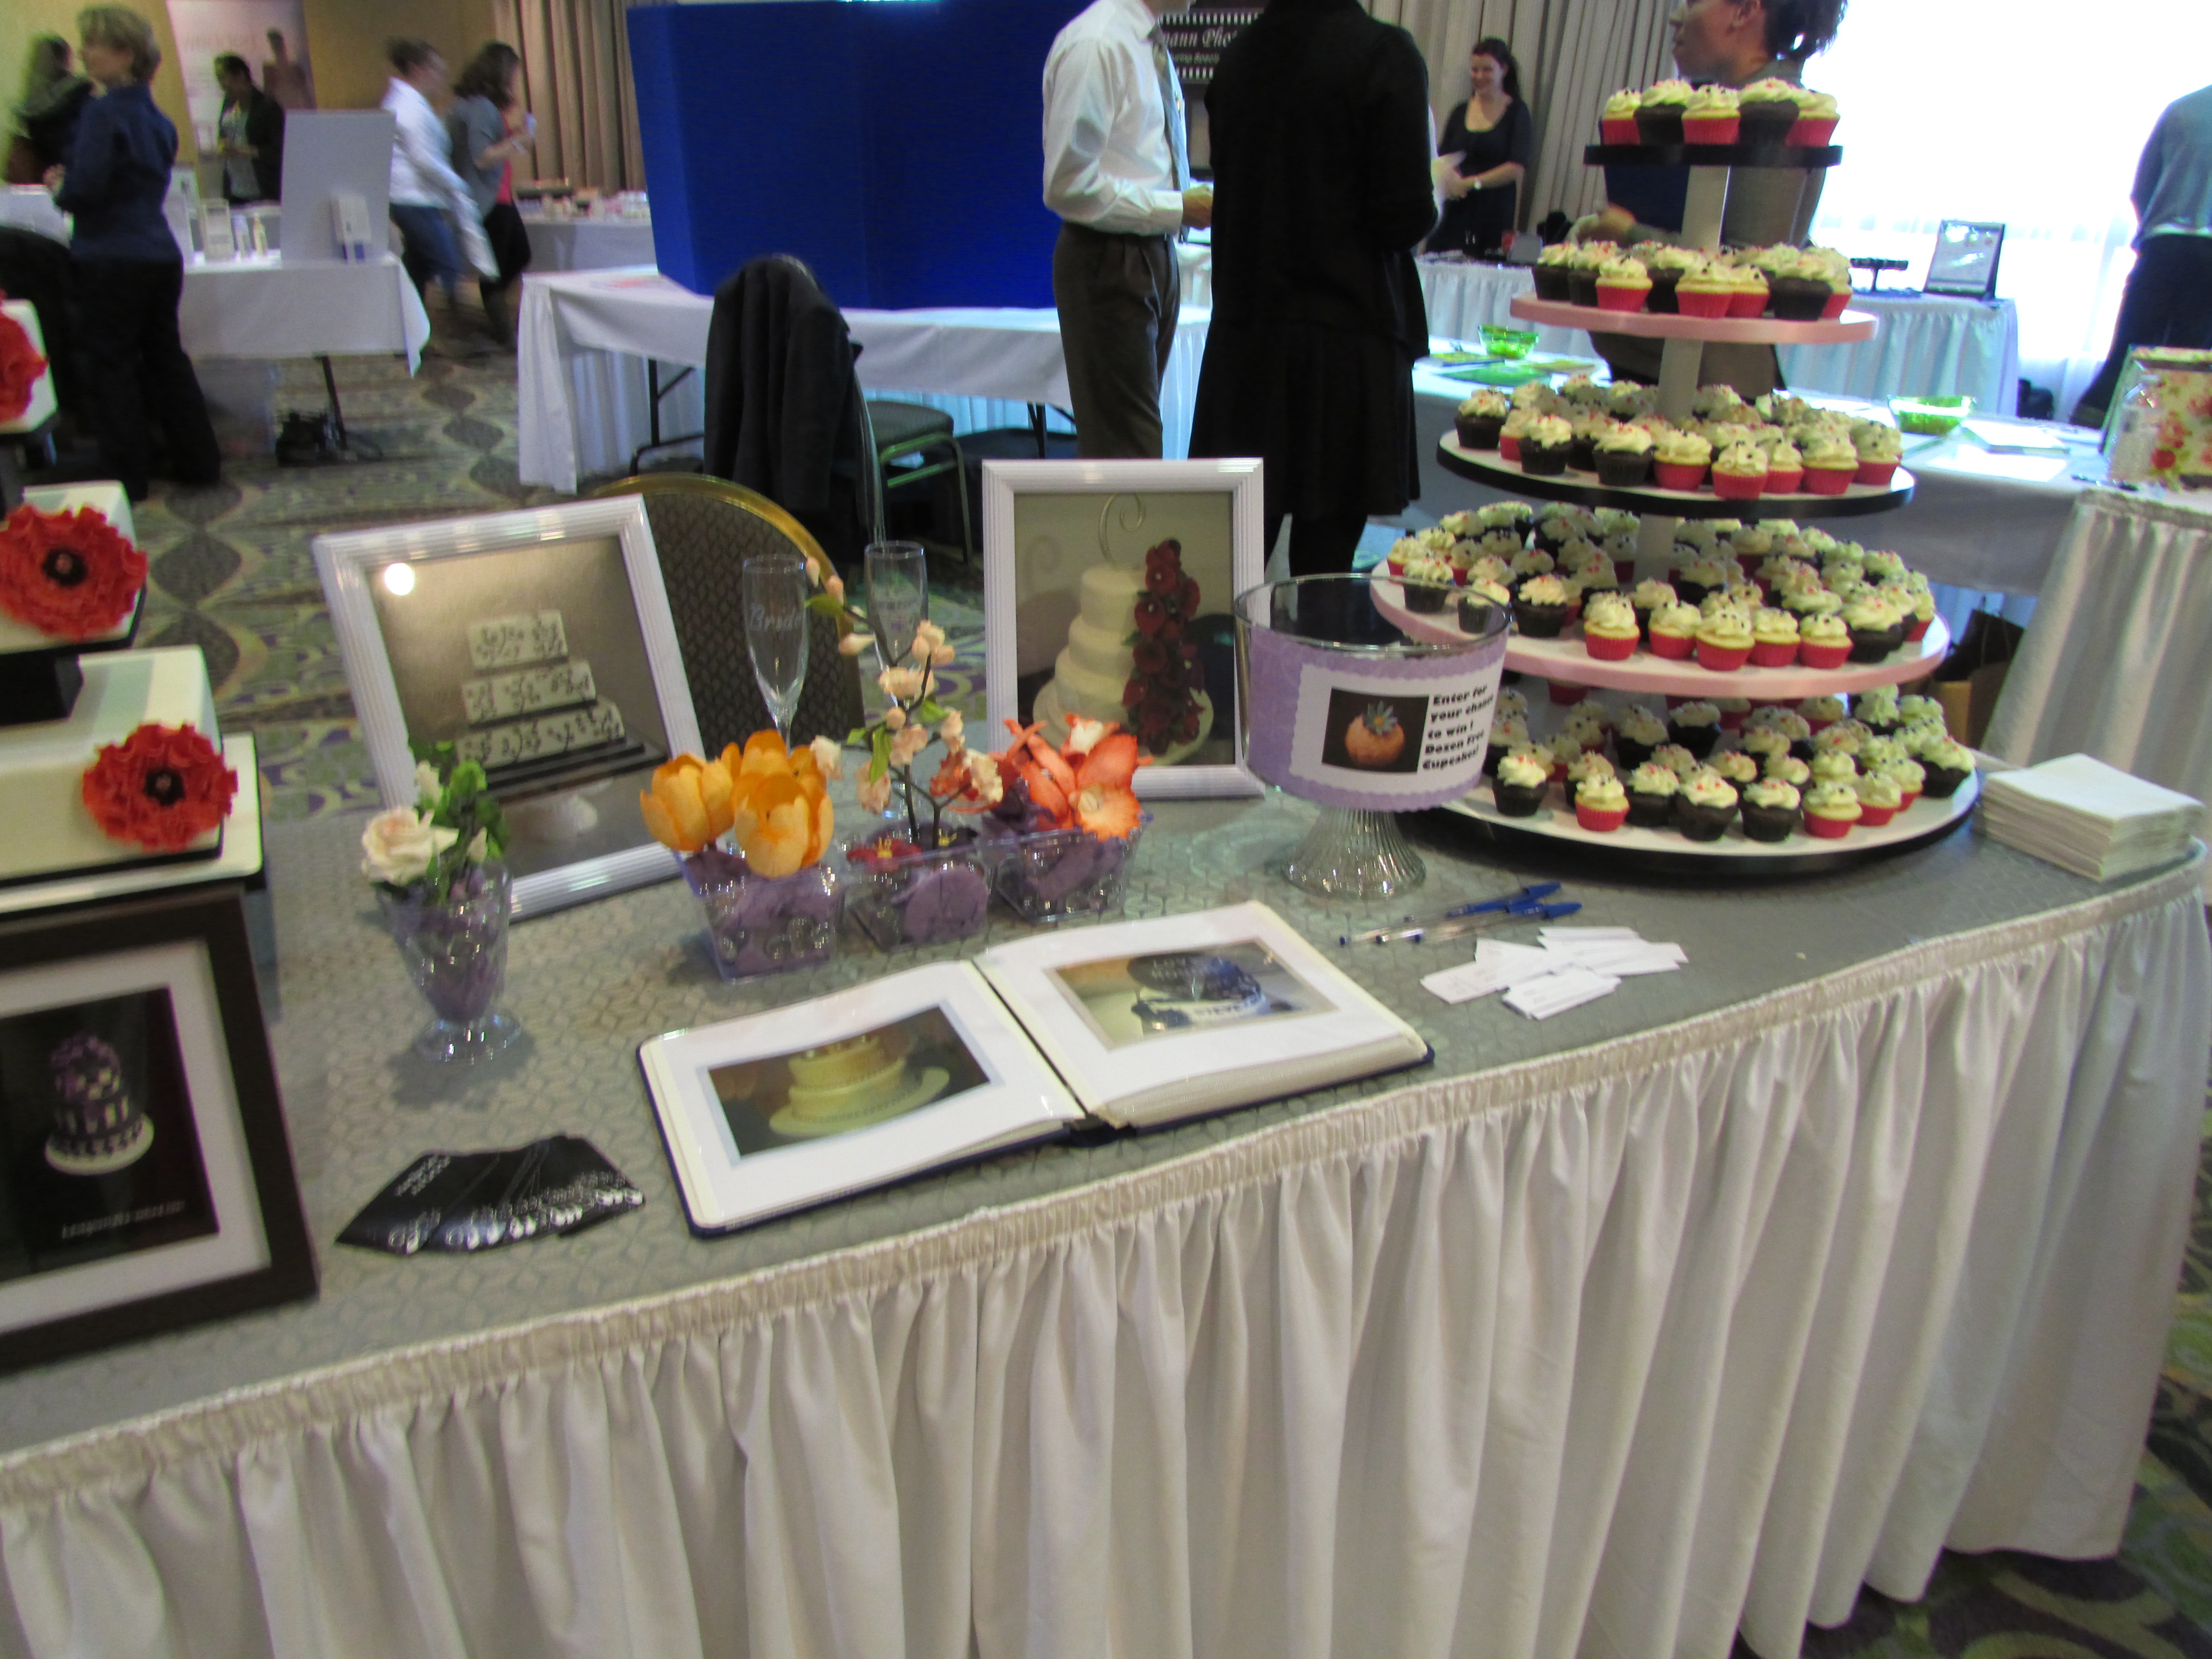 Example of wedding show, Cinderella Show, Welcome Wagon Show and Ribbons and Romance wedding fair